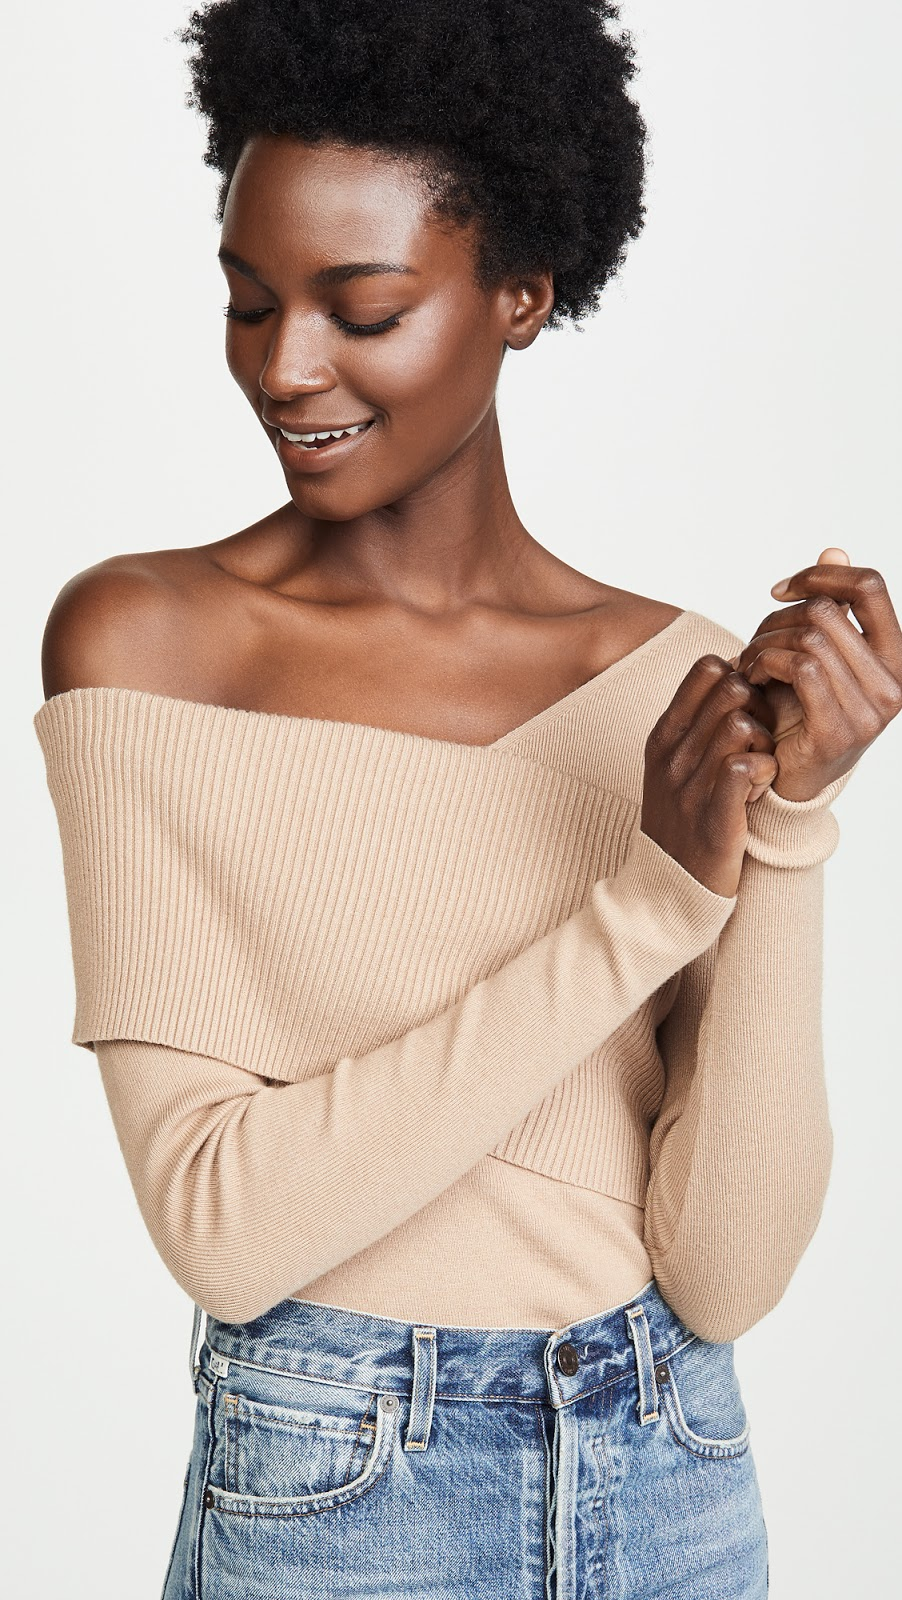 Stylish Under-$100 Off-The-Shoulder Sweater for Fall